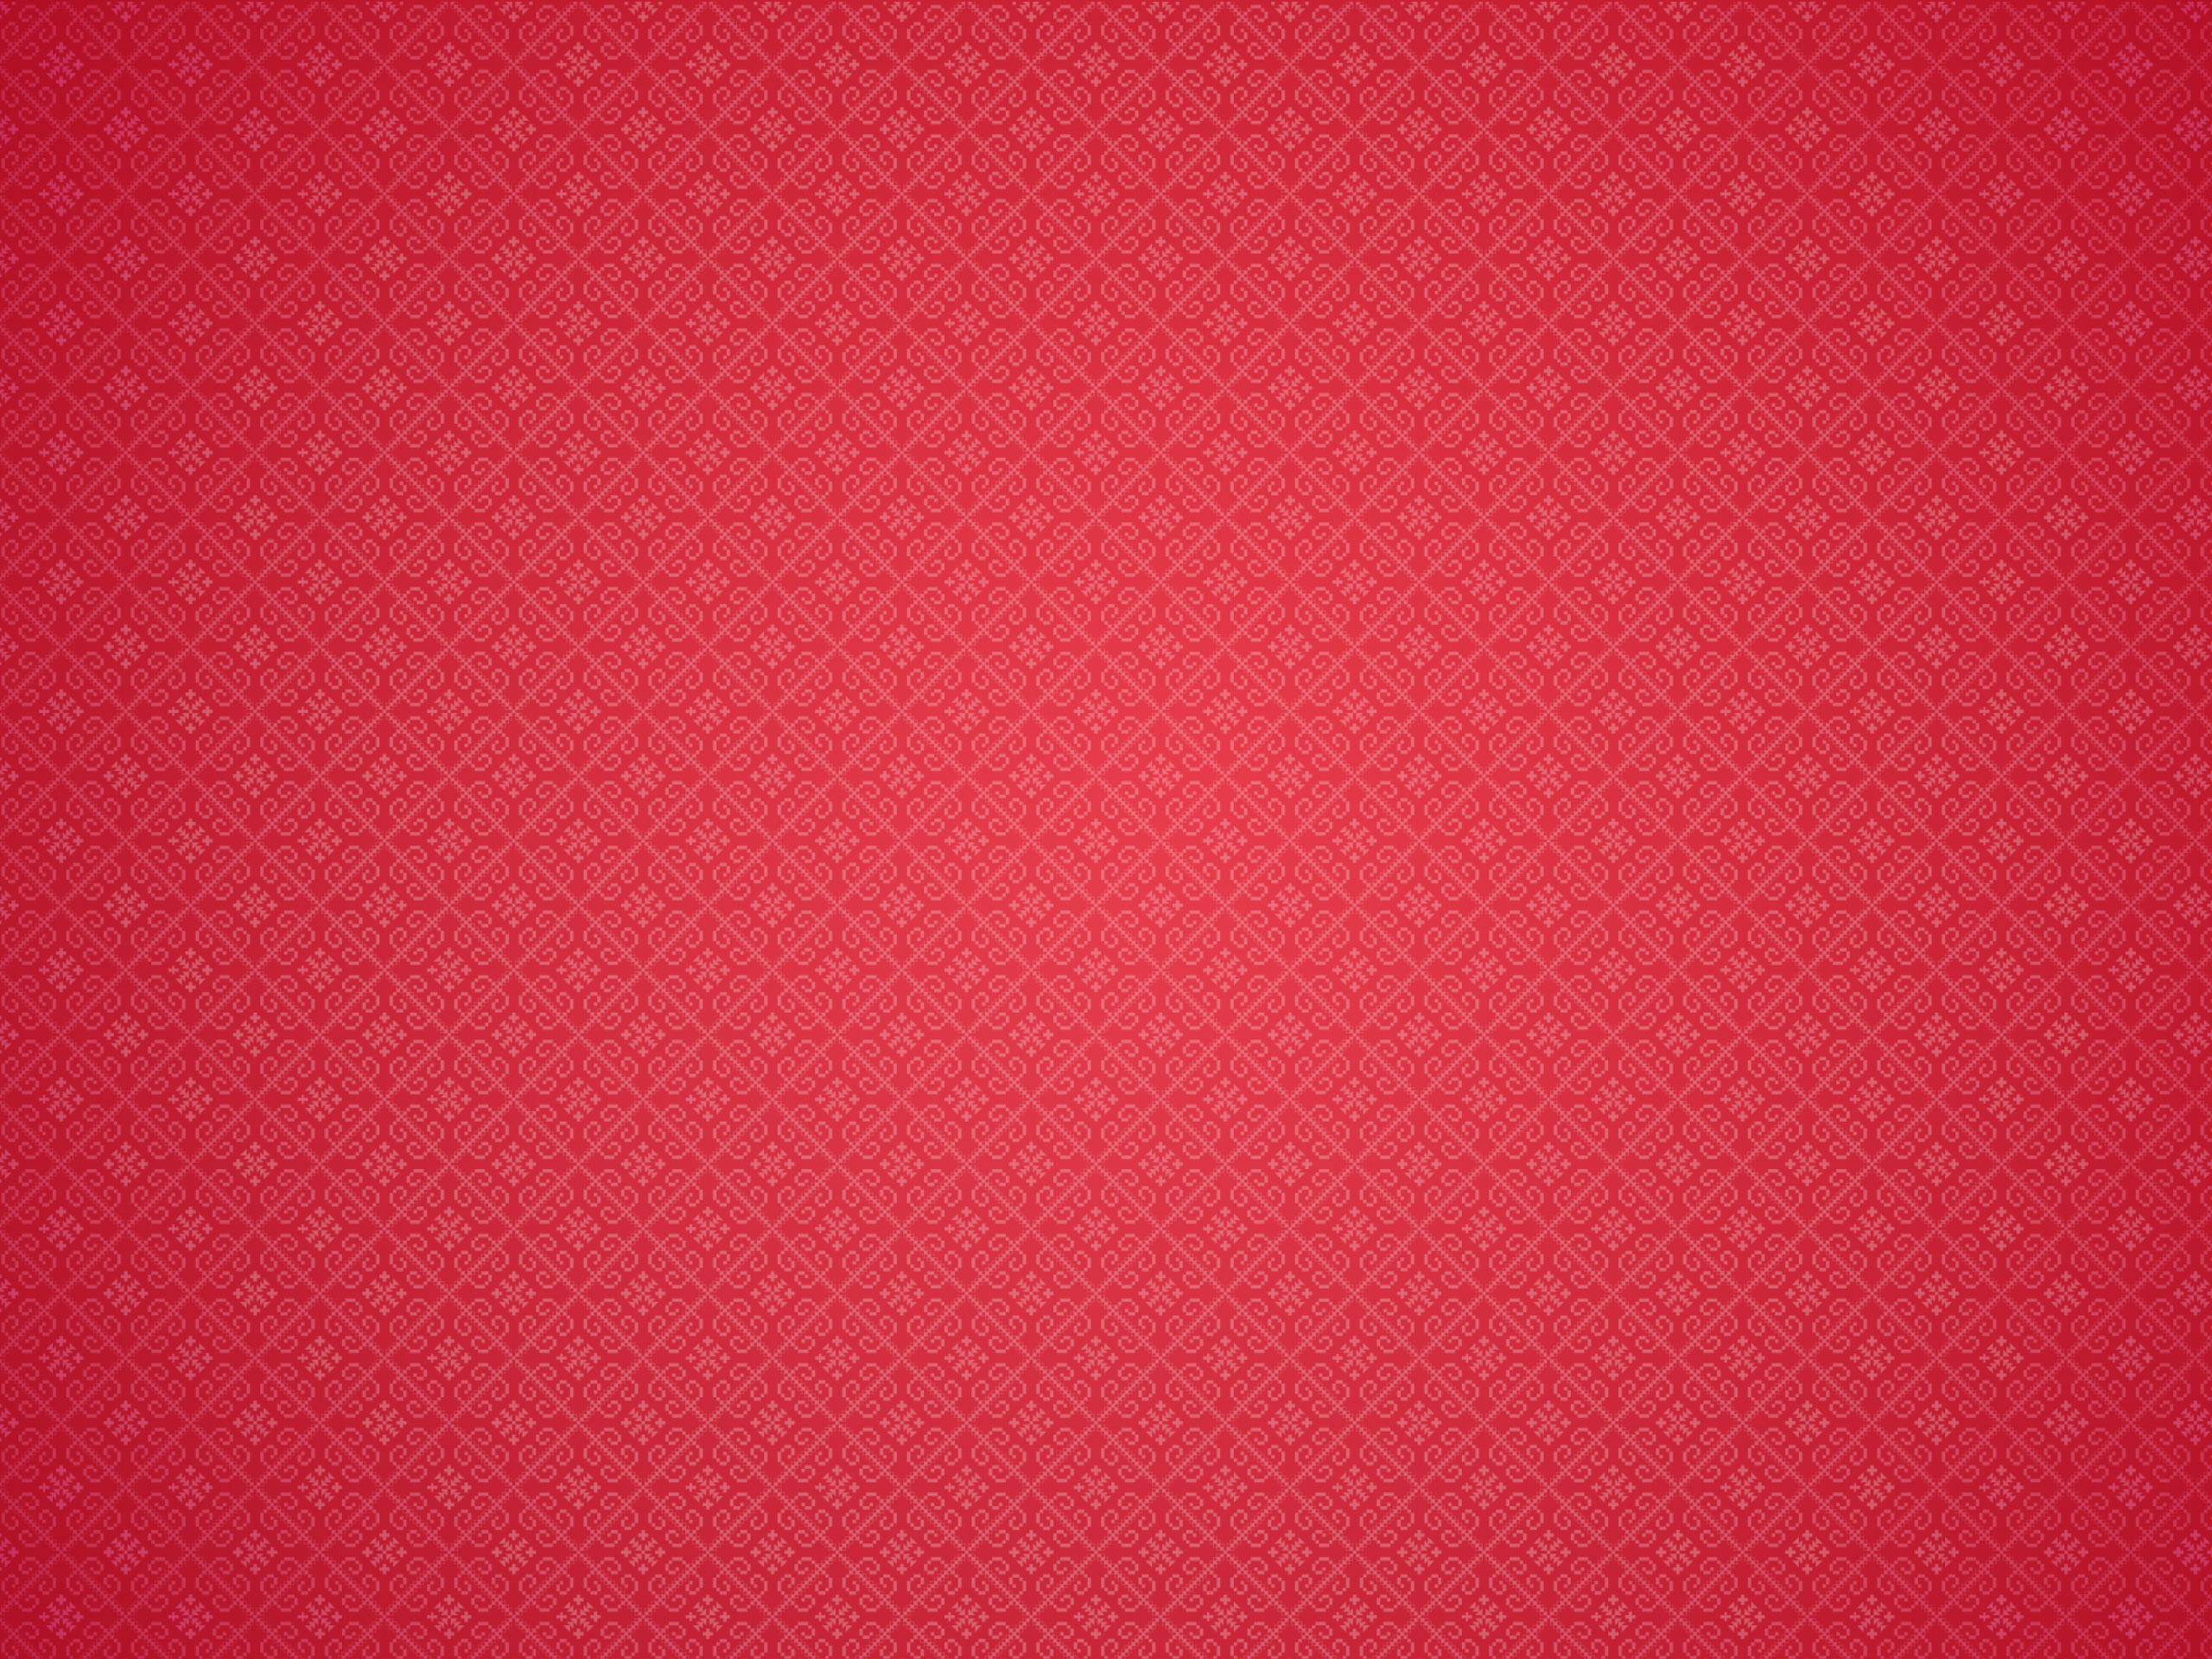 download red patterns wallpaper - photo #46